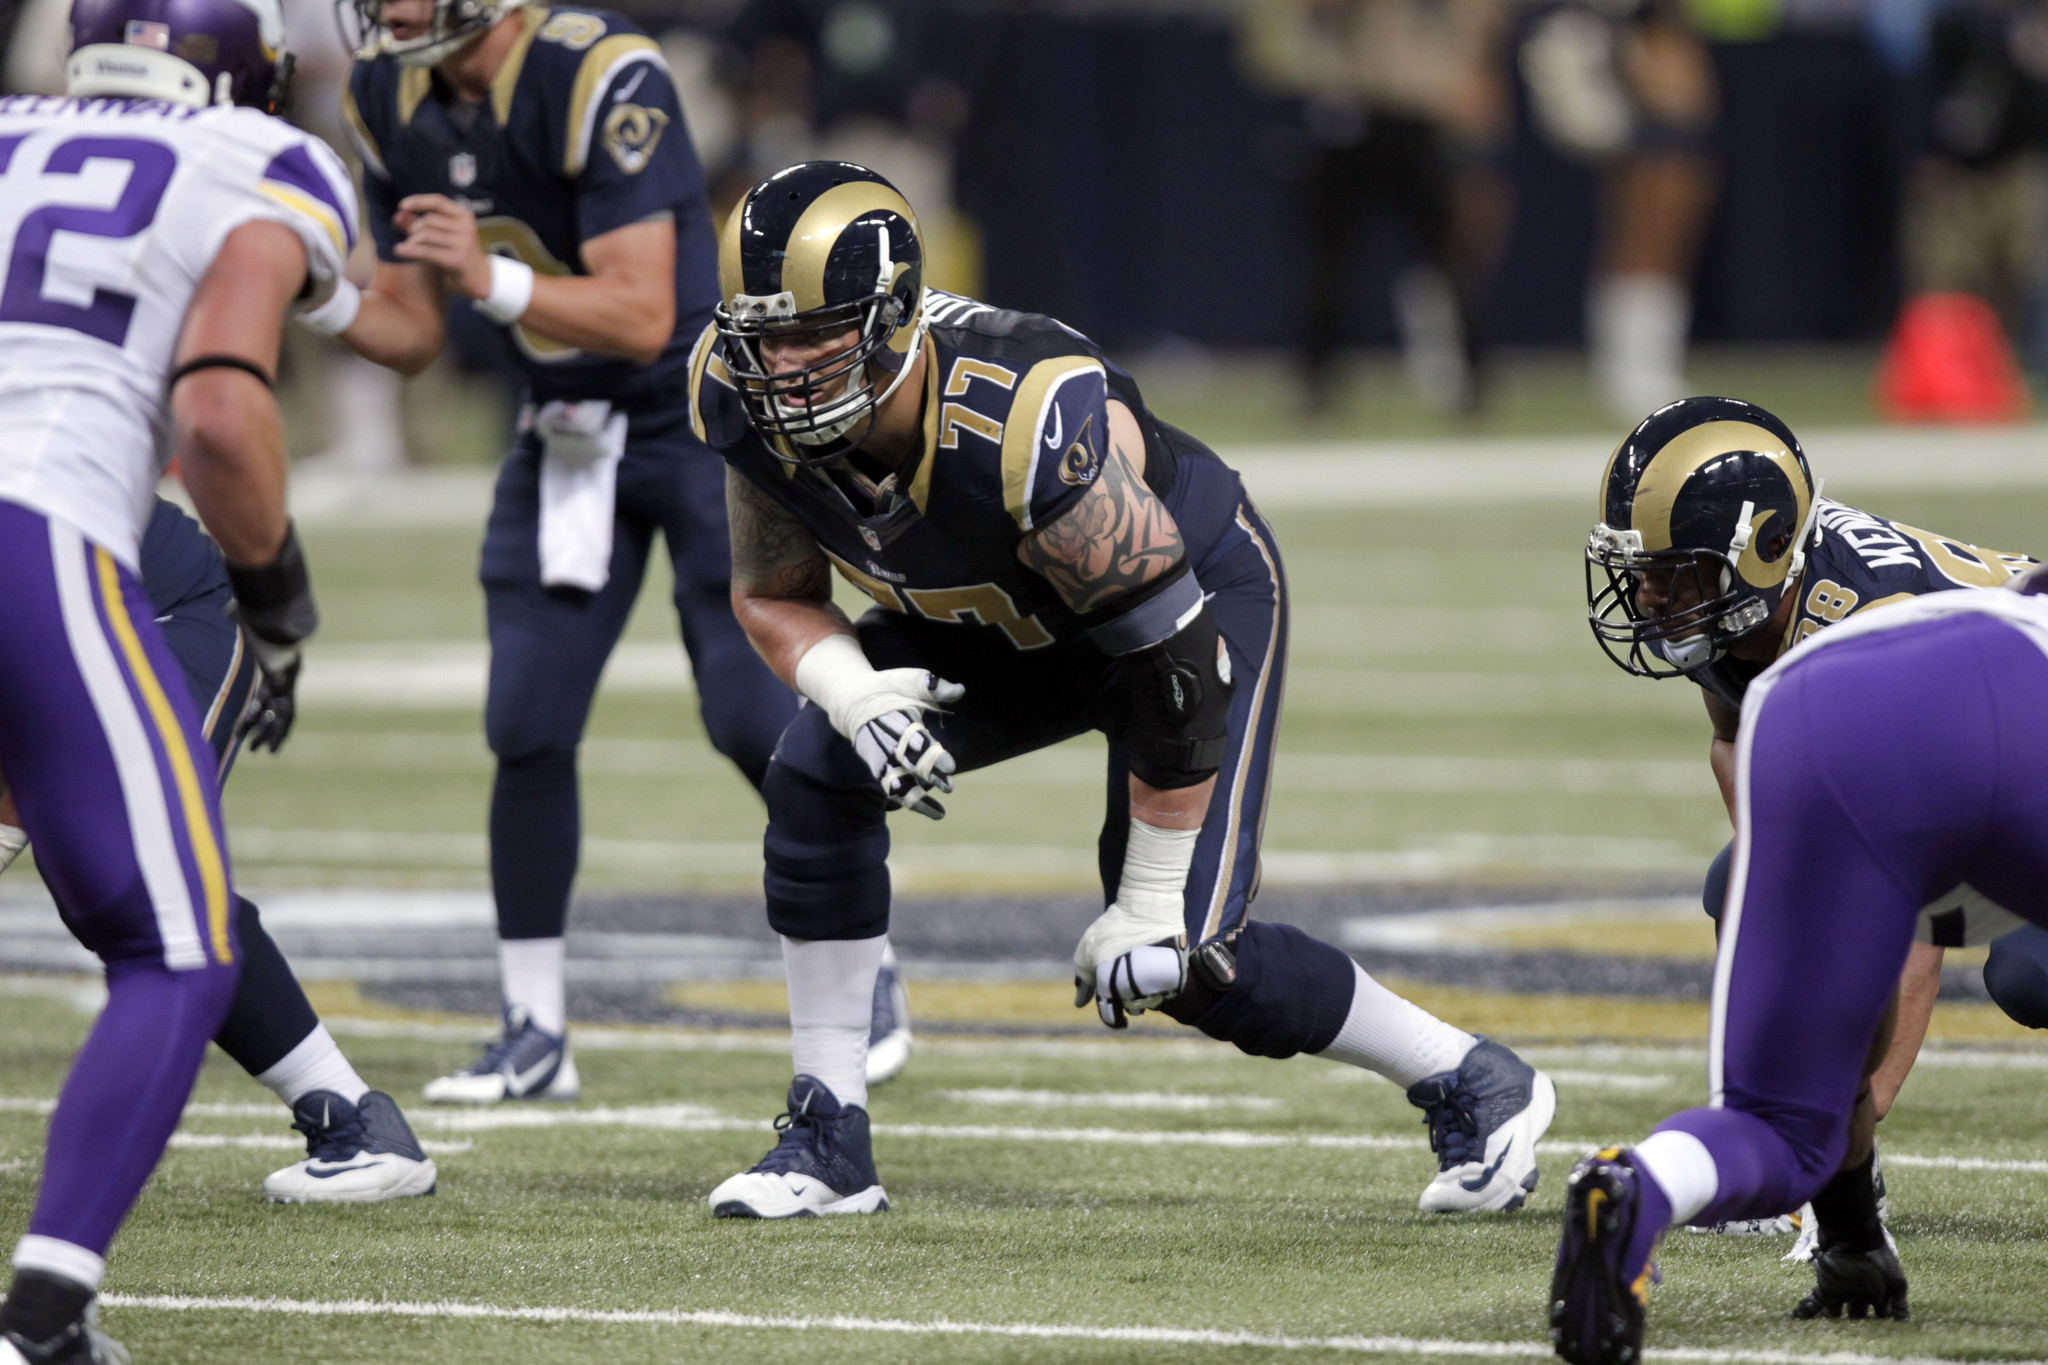 Bal-ravens-bring-in-offensive-tackle-jake-long-a-former-first-overall-pick-20160726